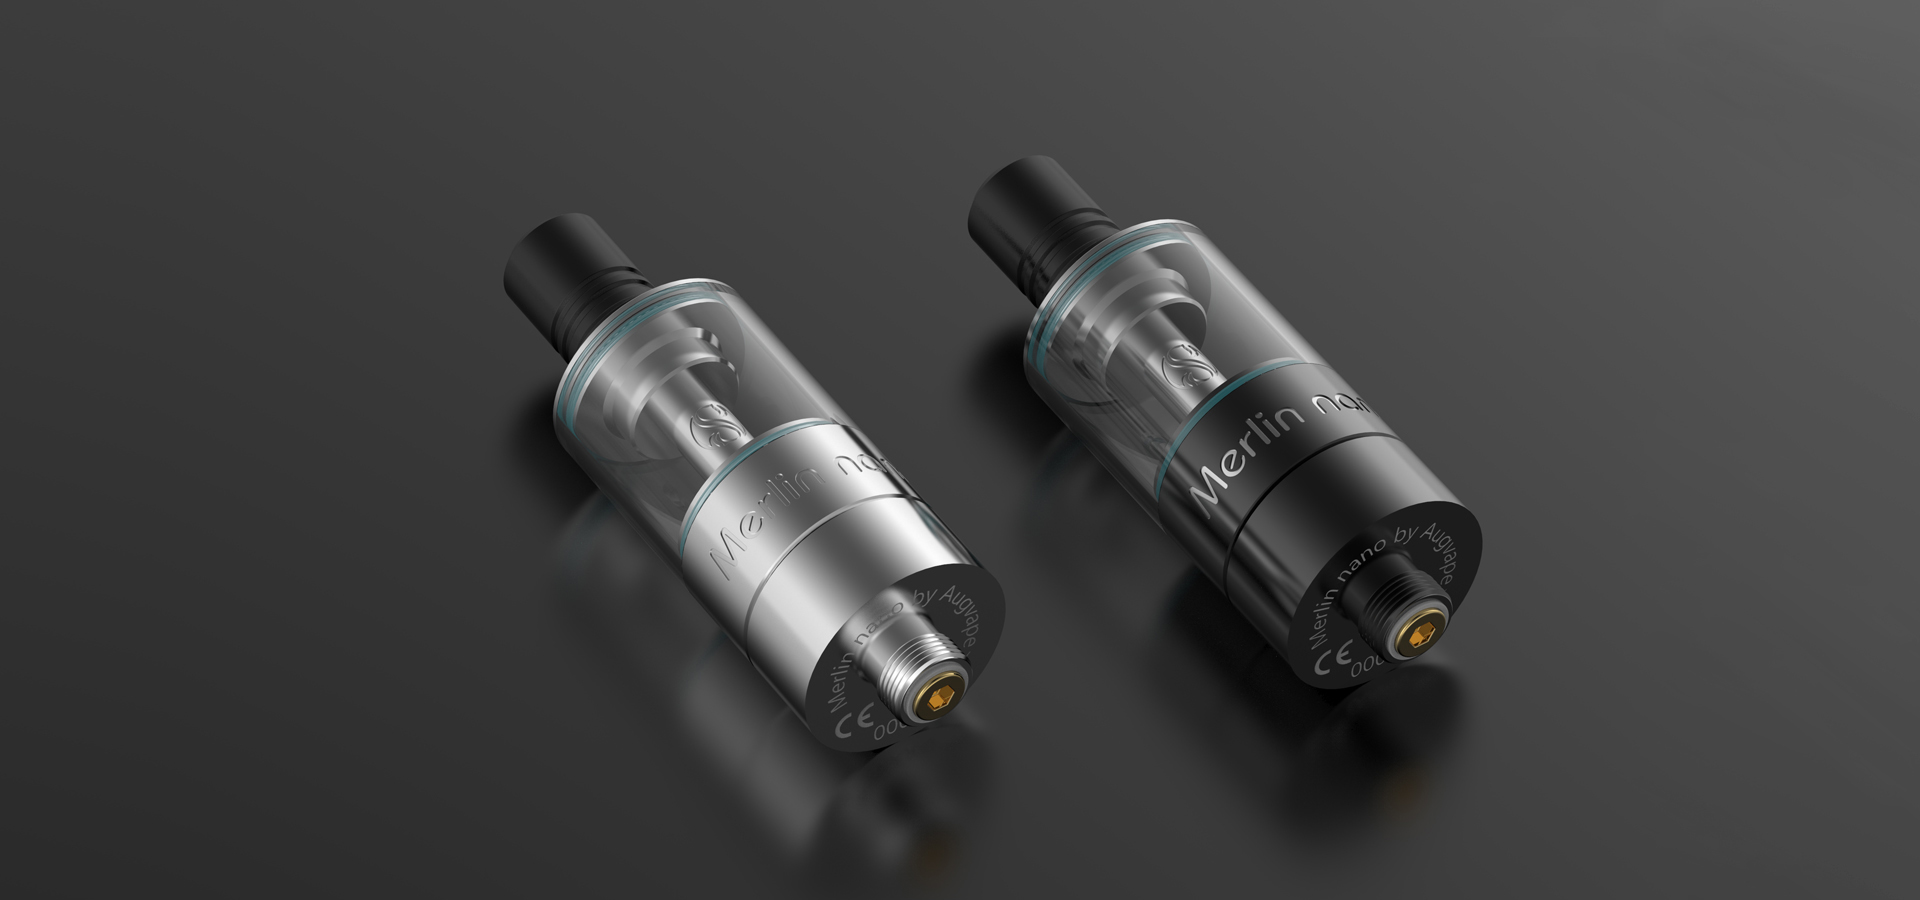 BEST MERLIN NANO MTL RTA 2019